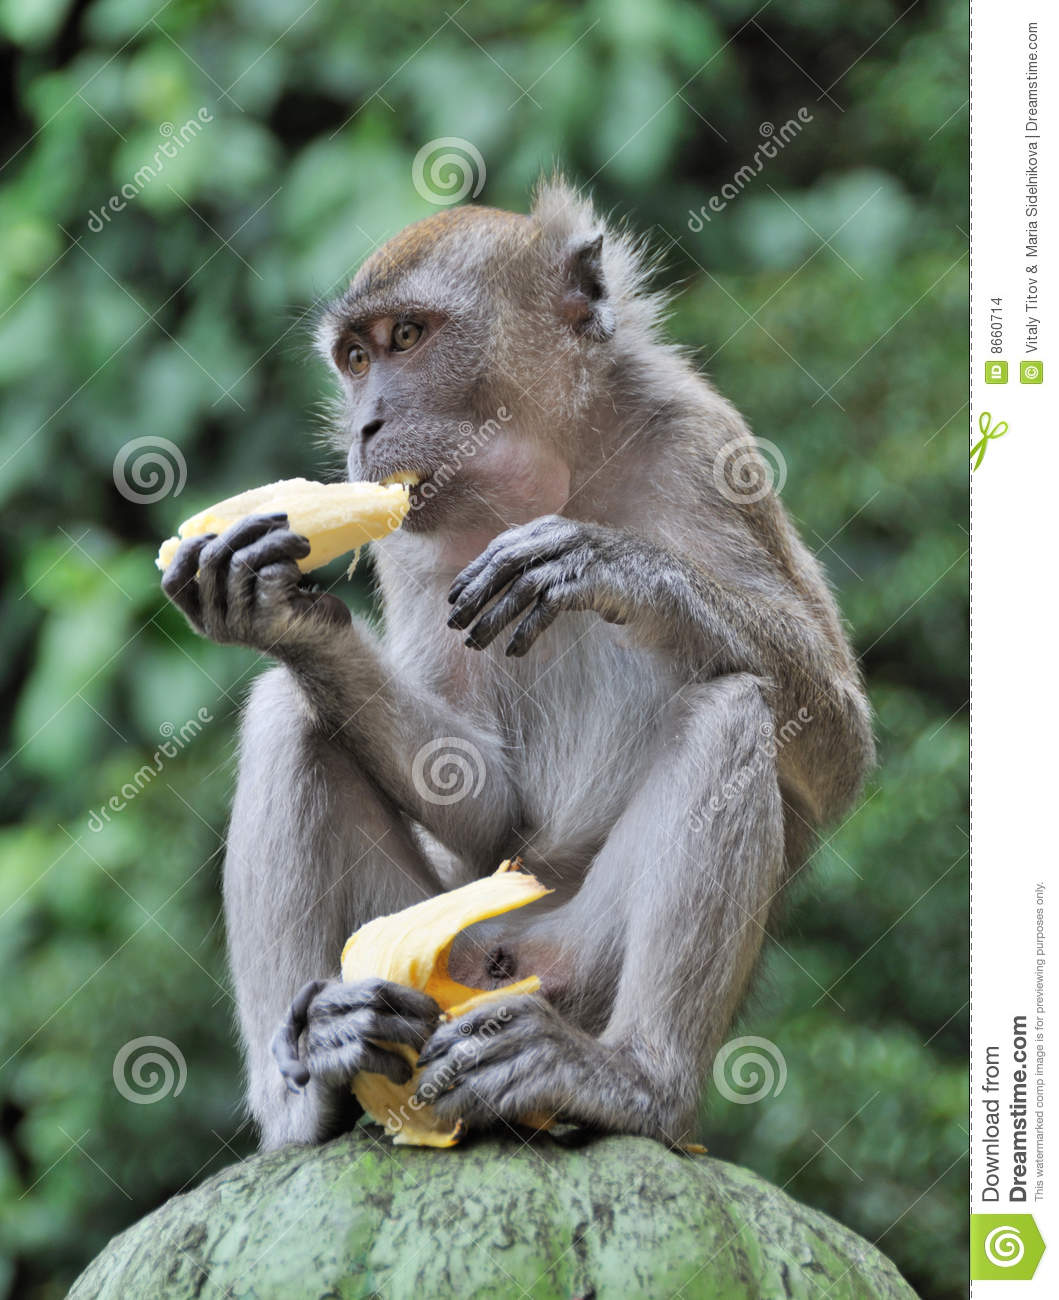 Lion Picture Clipart Monkey Eating Banana Stock Images Image 8660714